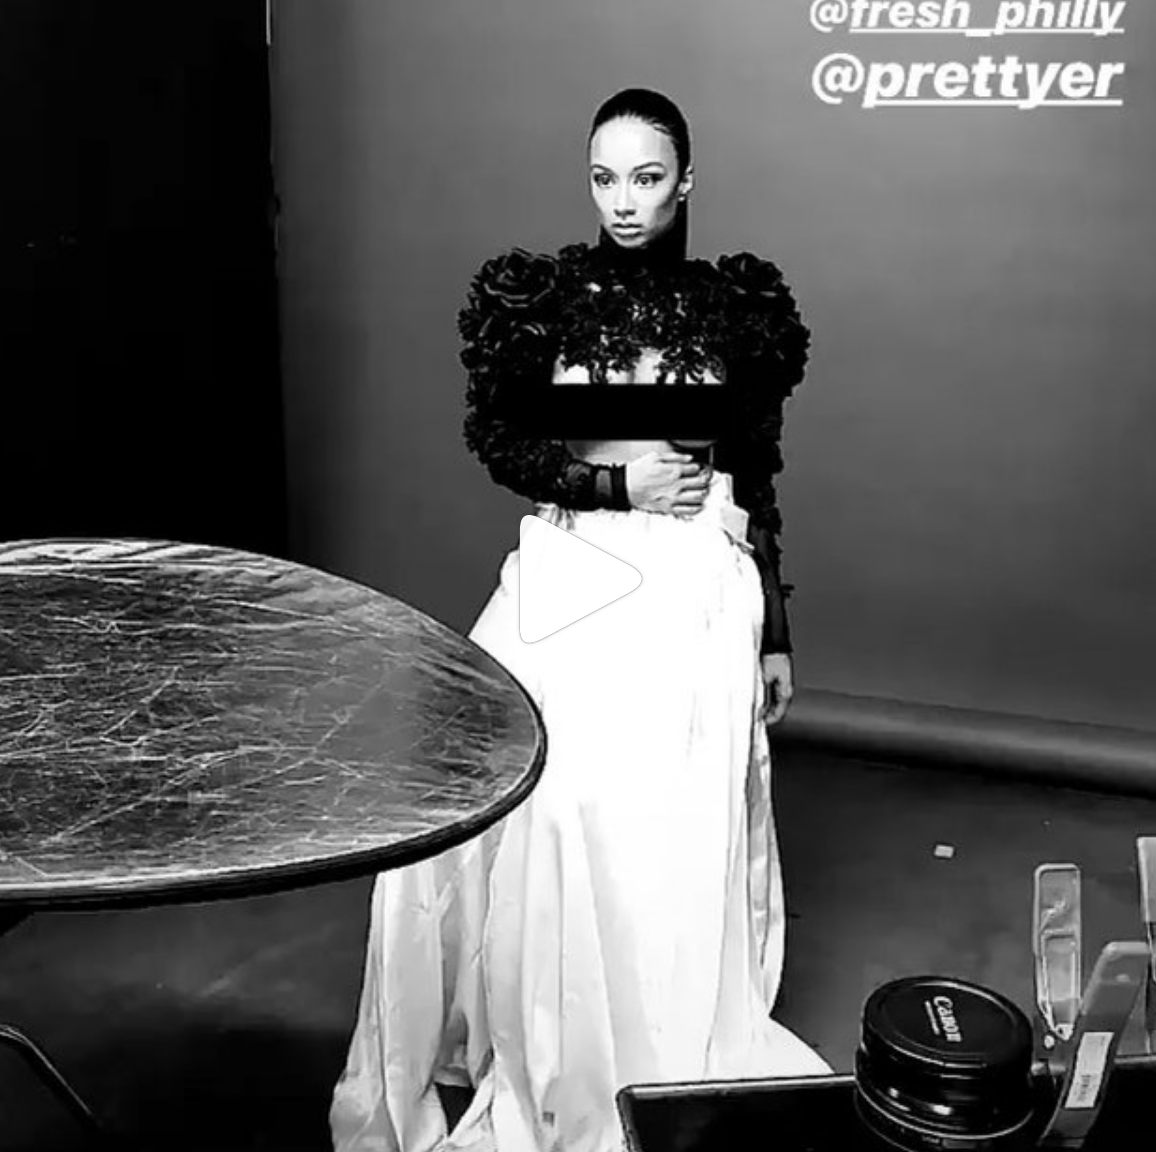 Tv star and digital sensation  @drayamichele  wearing our fabulous designer  @lorysunartistry  couture top for this upcoming fashion editorial styled by  @fresh_philly  fashion provided by  #ivanbittonstylehouse